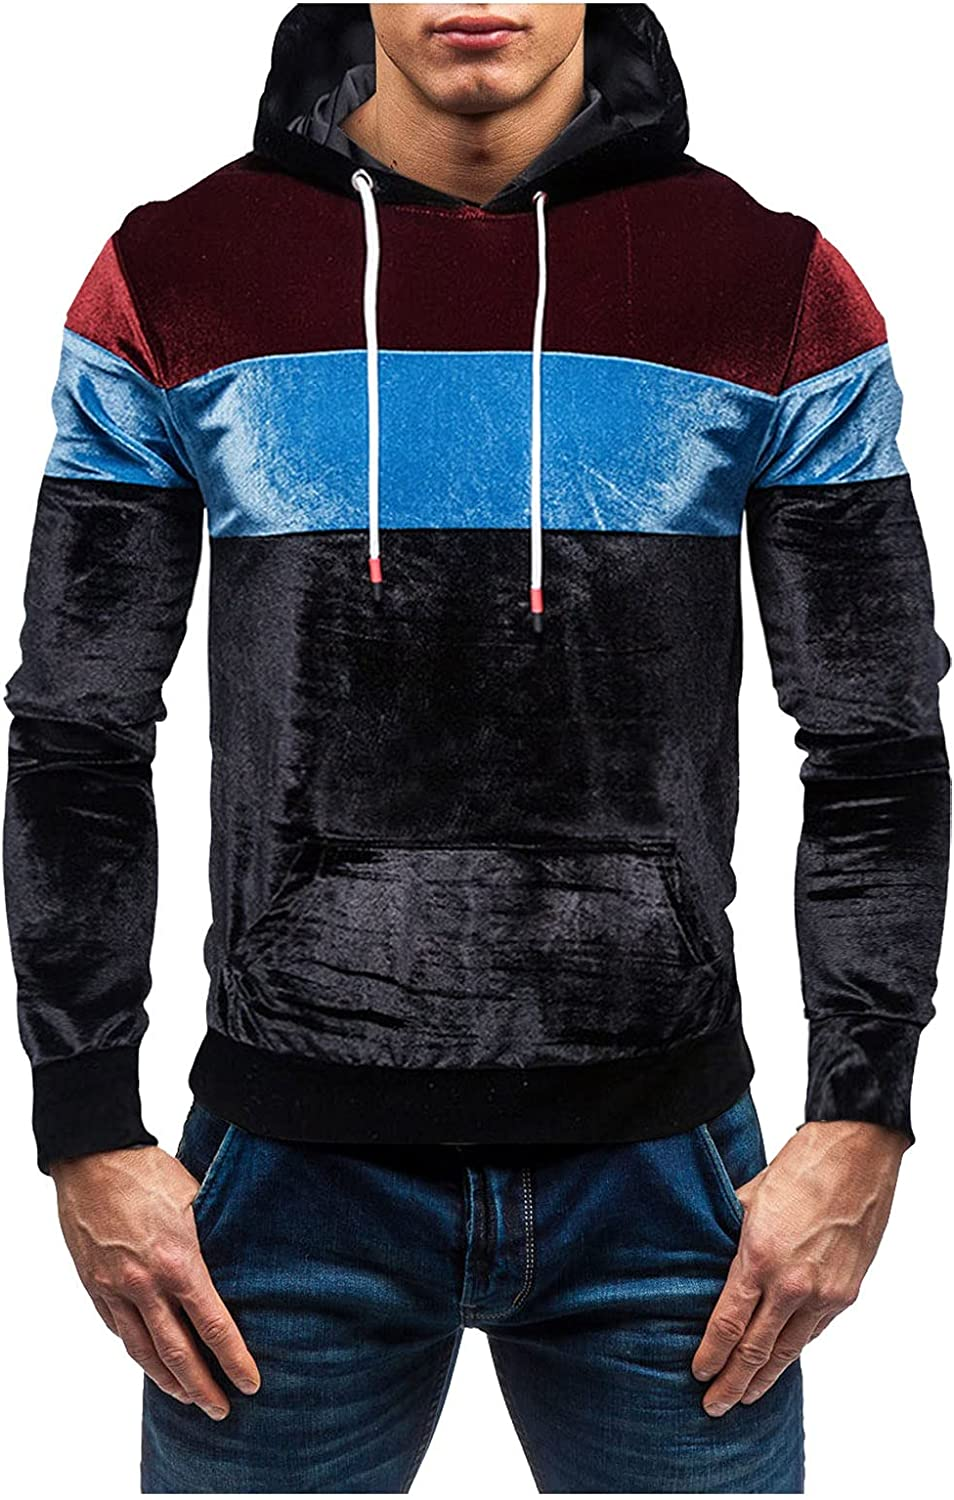 HONGJ Patchwork Hoodies for Mens, Fall Color Block Stitching Hooded Sweatshirts Slim Fit Workout Sports Pullover Tops